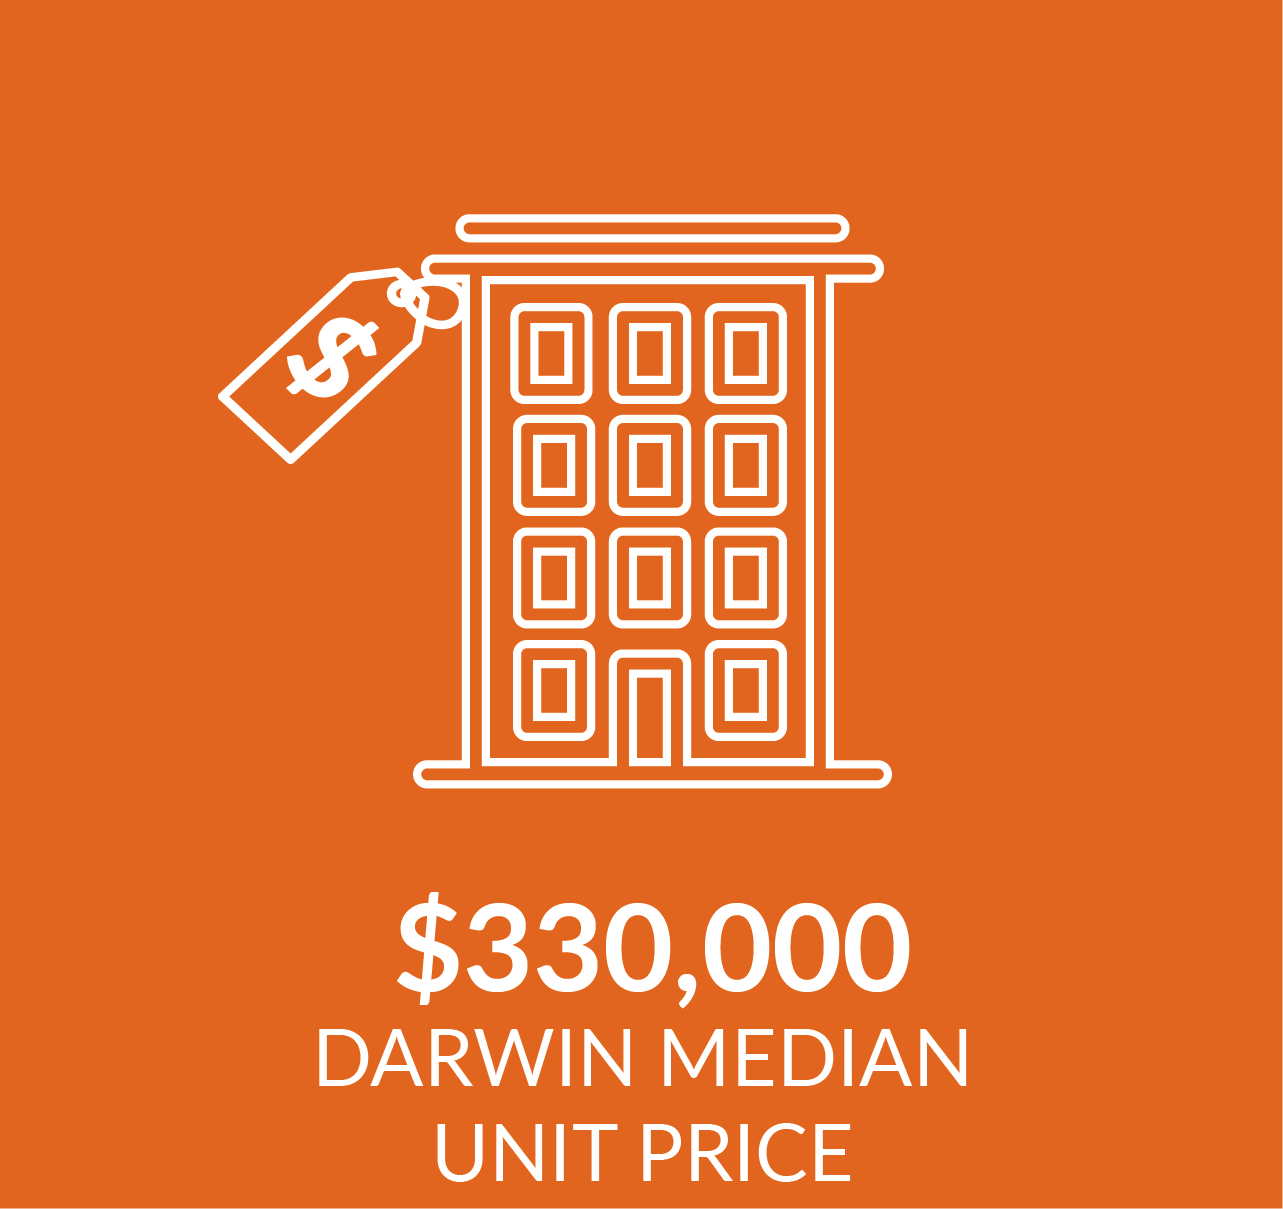 Infographic showing median unit price